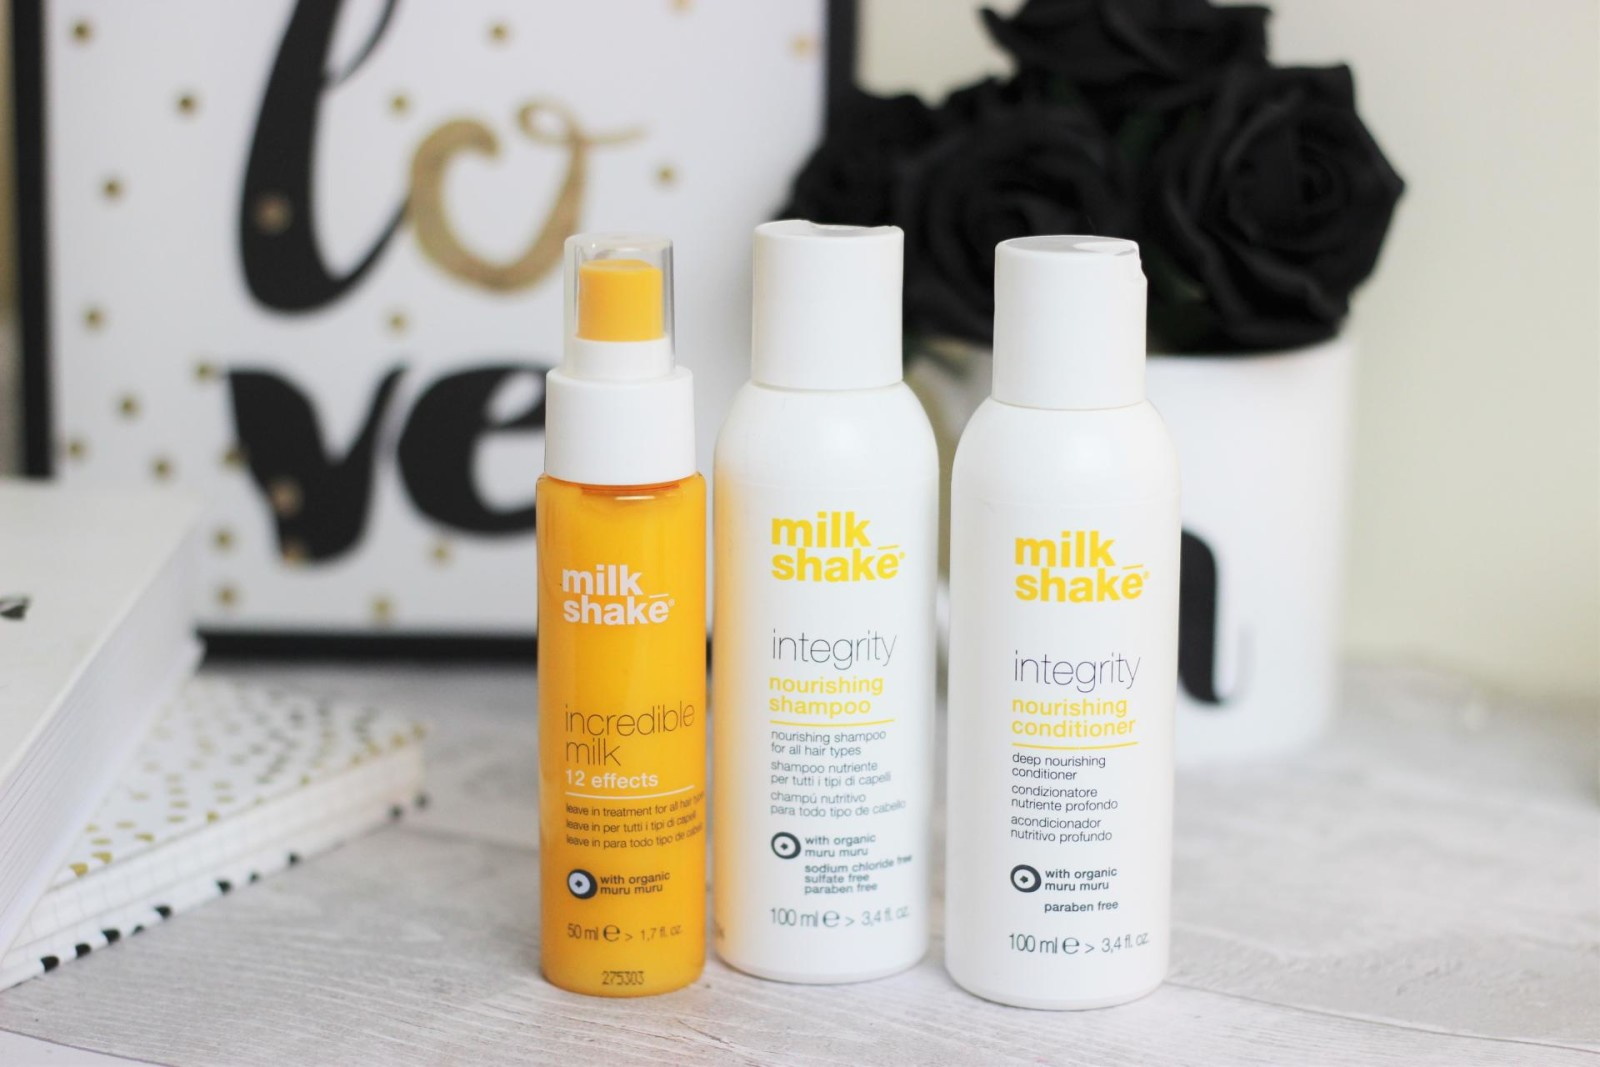 The Weekend Away Toiletry Bag milkshake integrity hair care